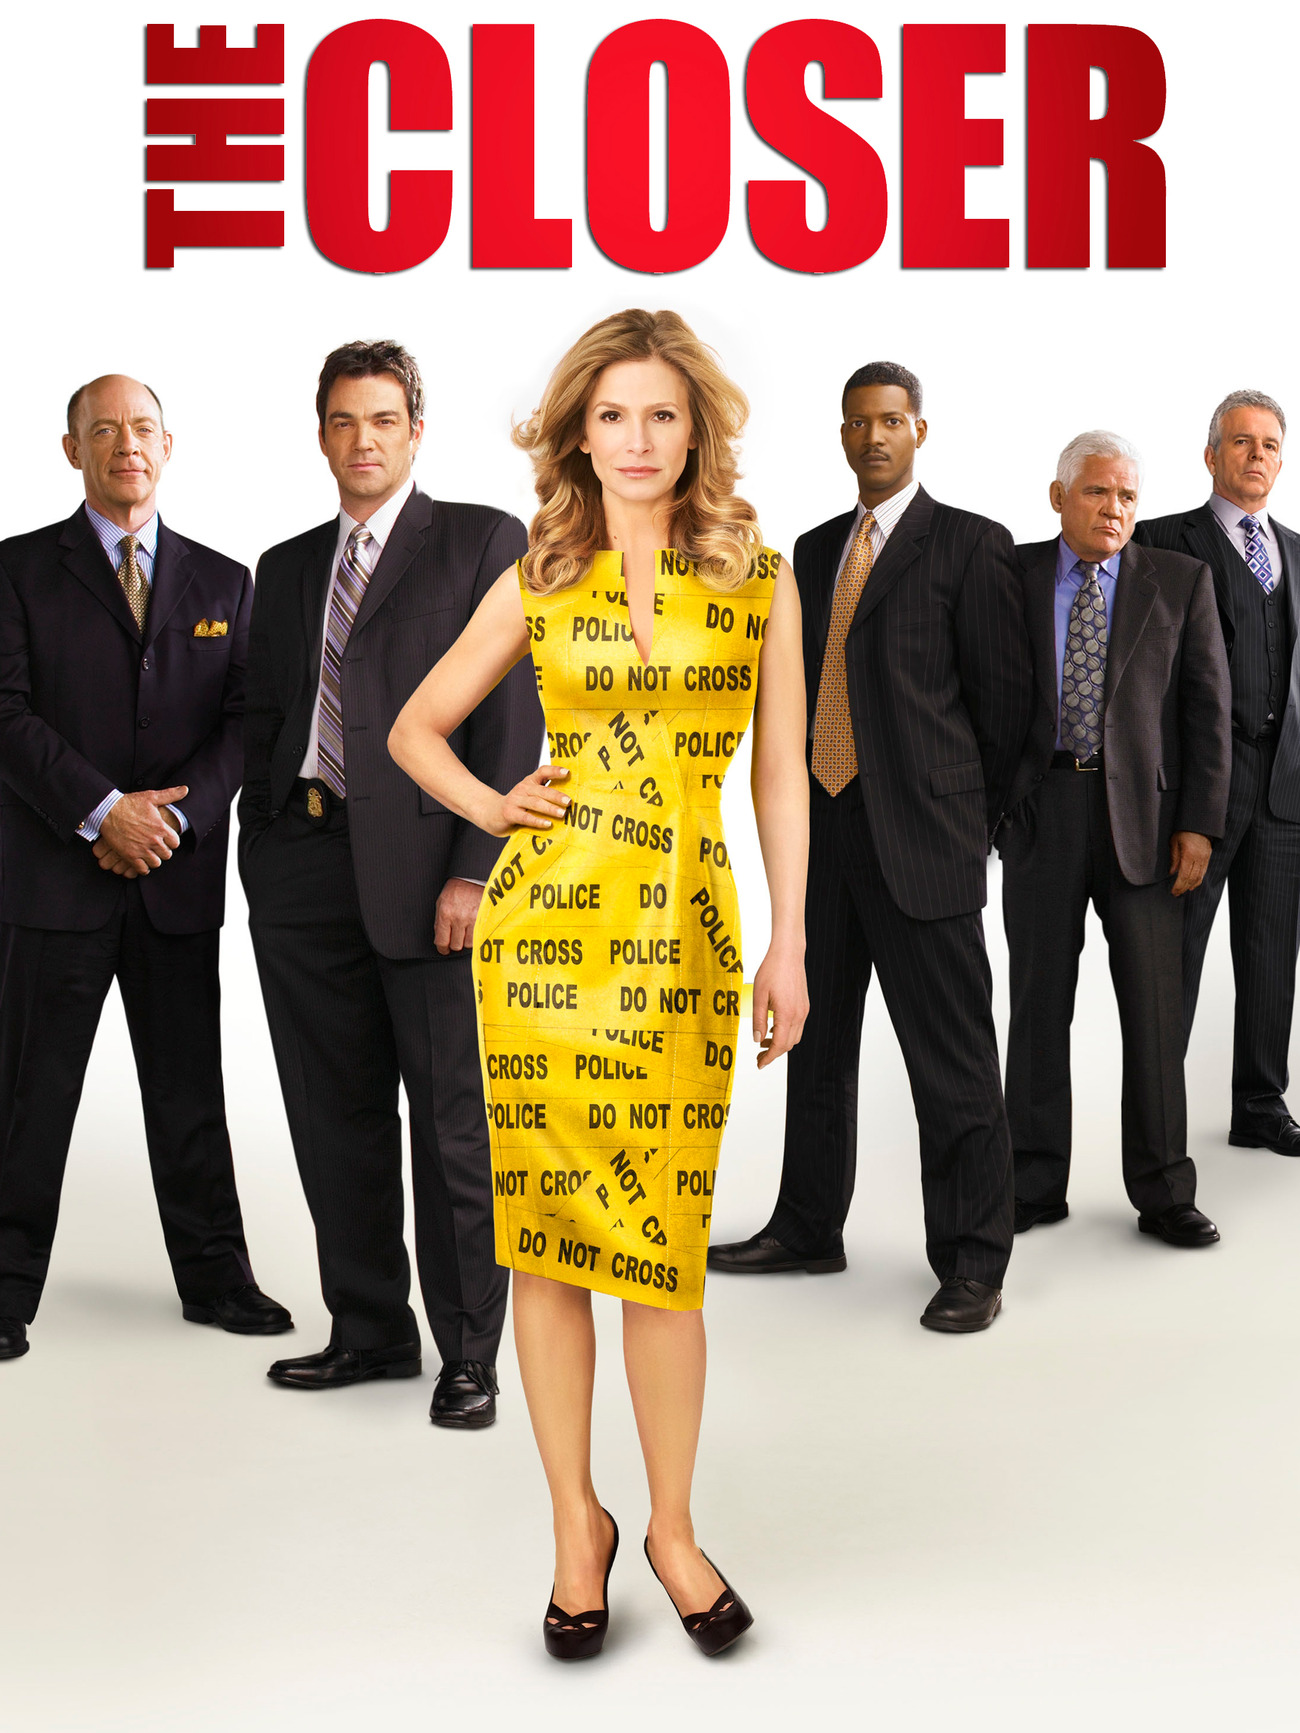 The Closer - Season 1